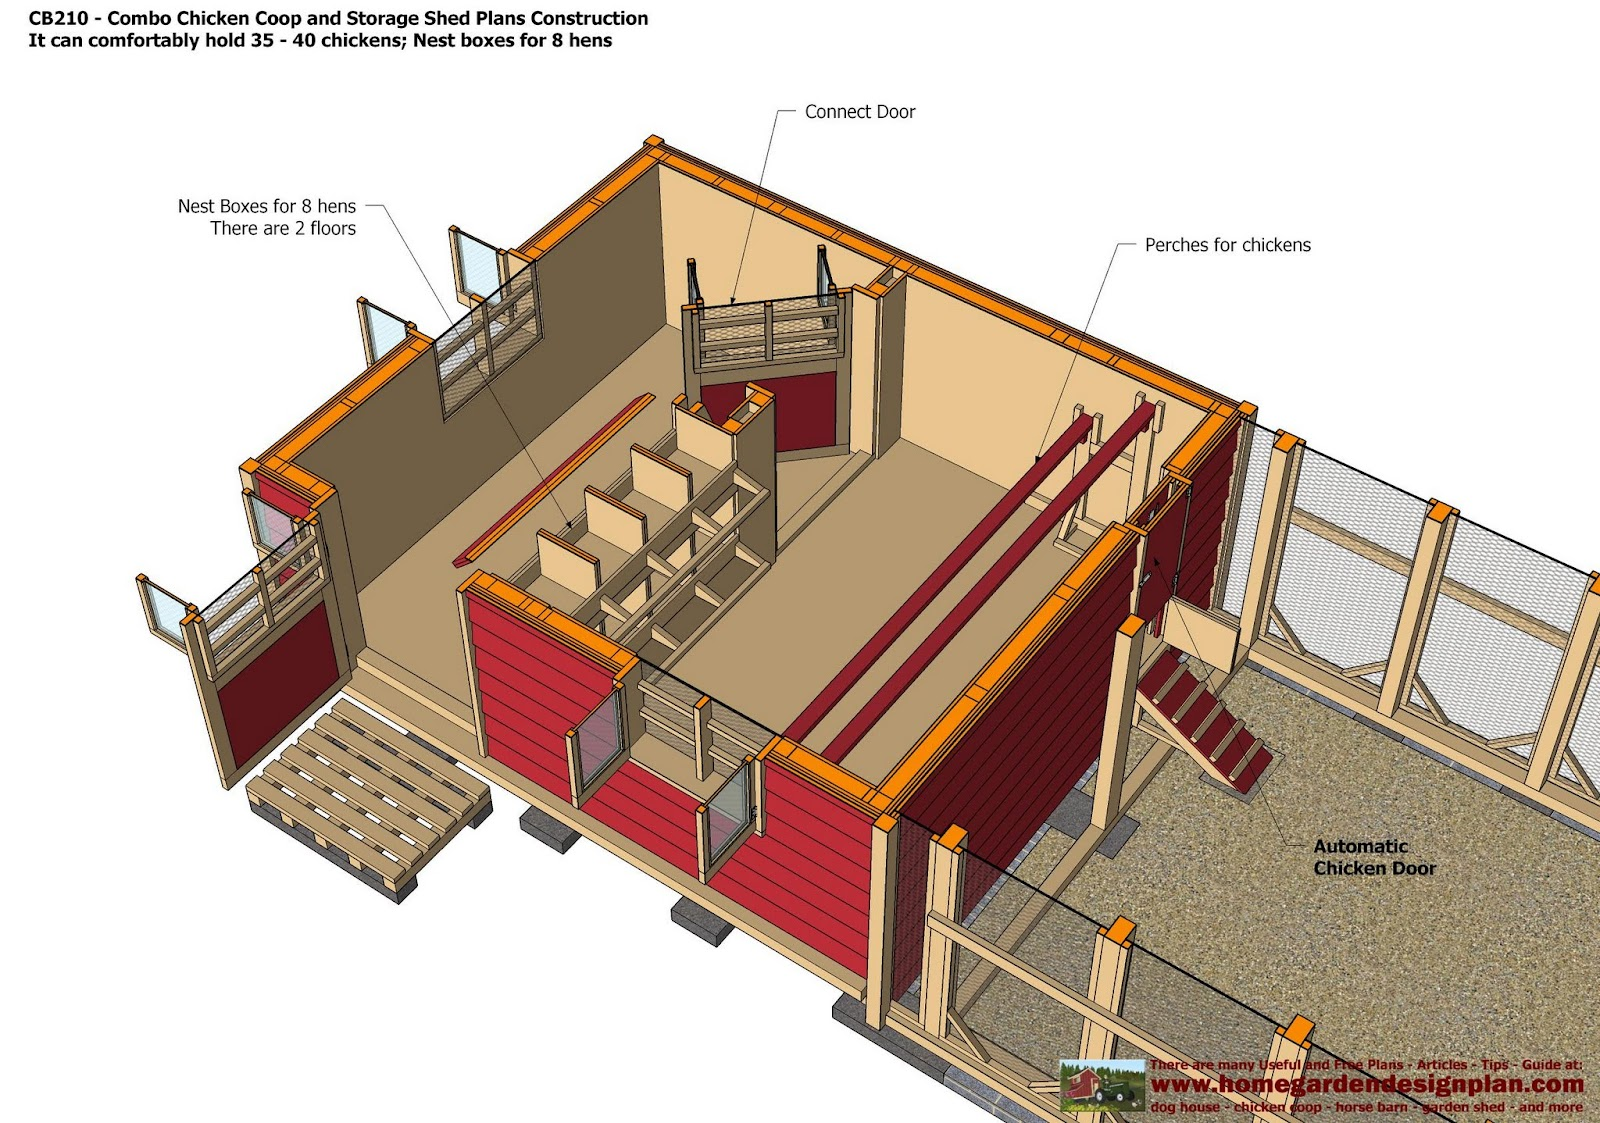 Chcken coop shed and chicken coop design for Shed design plans